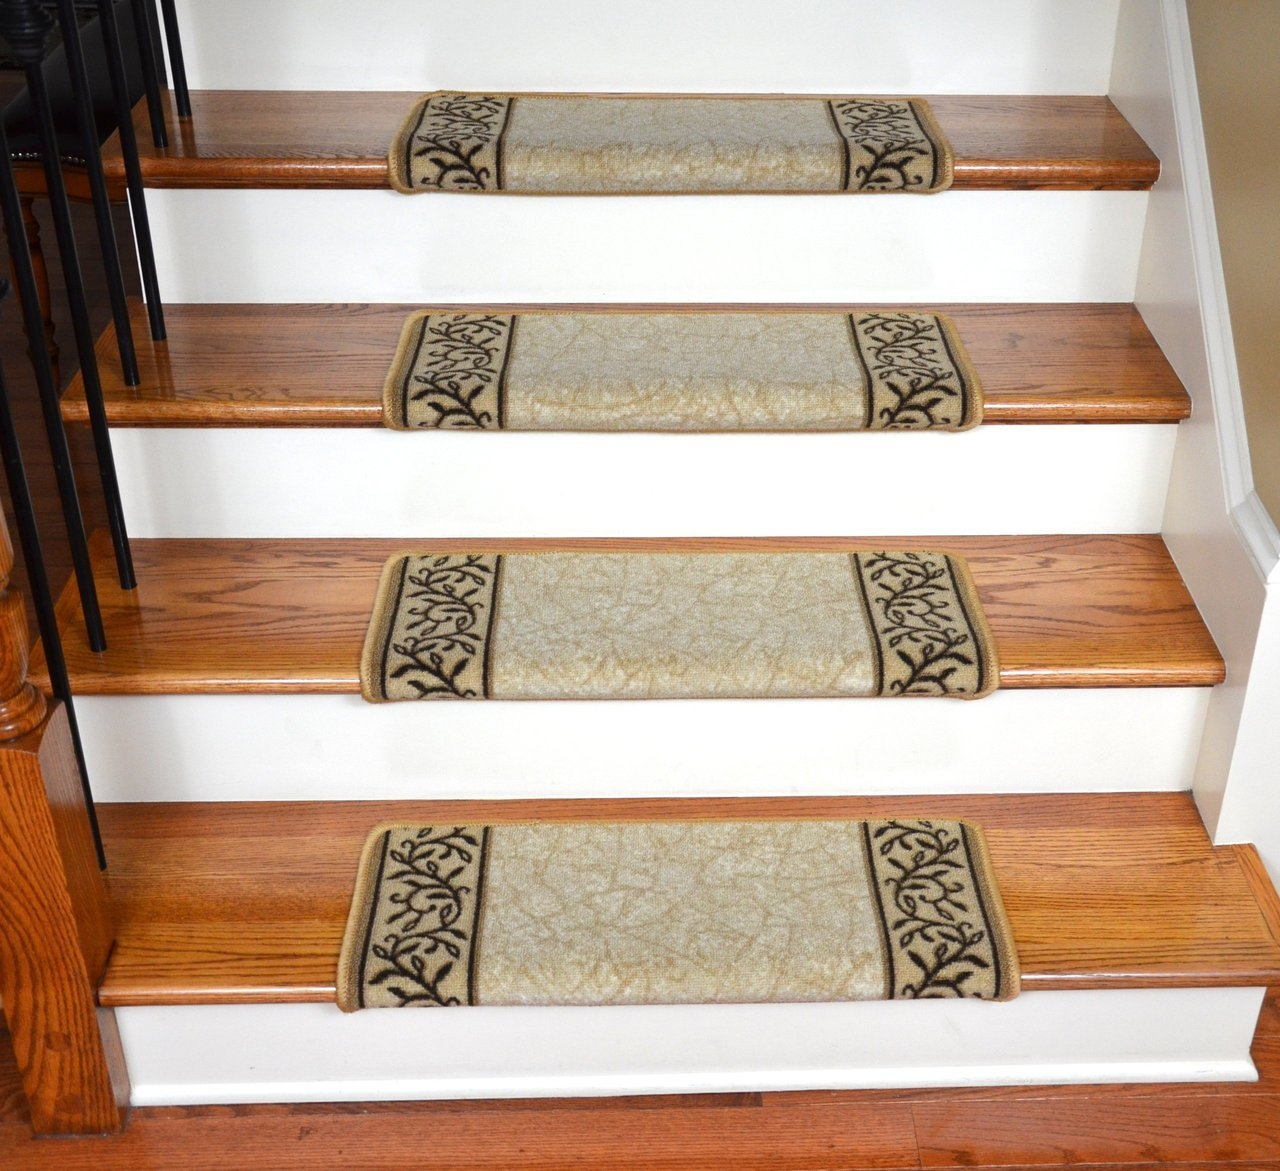 Professional Carpet Runner Install Vs Diy Stair Treads Throughout Diy Stair Tread Rugs (View 3 of 15)